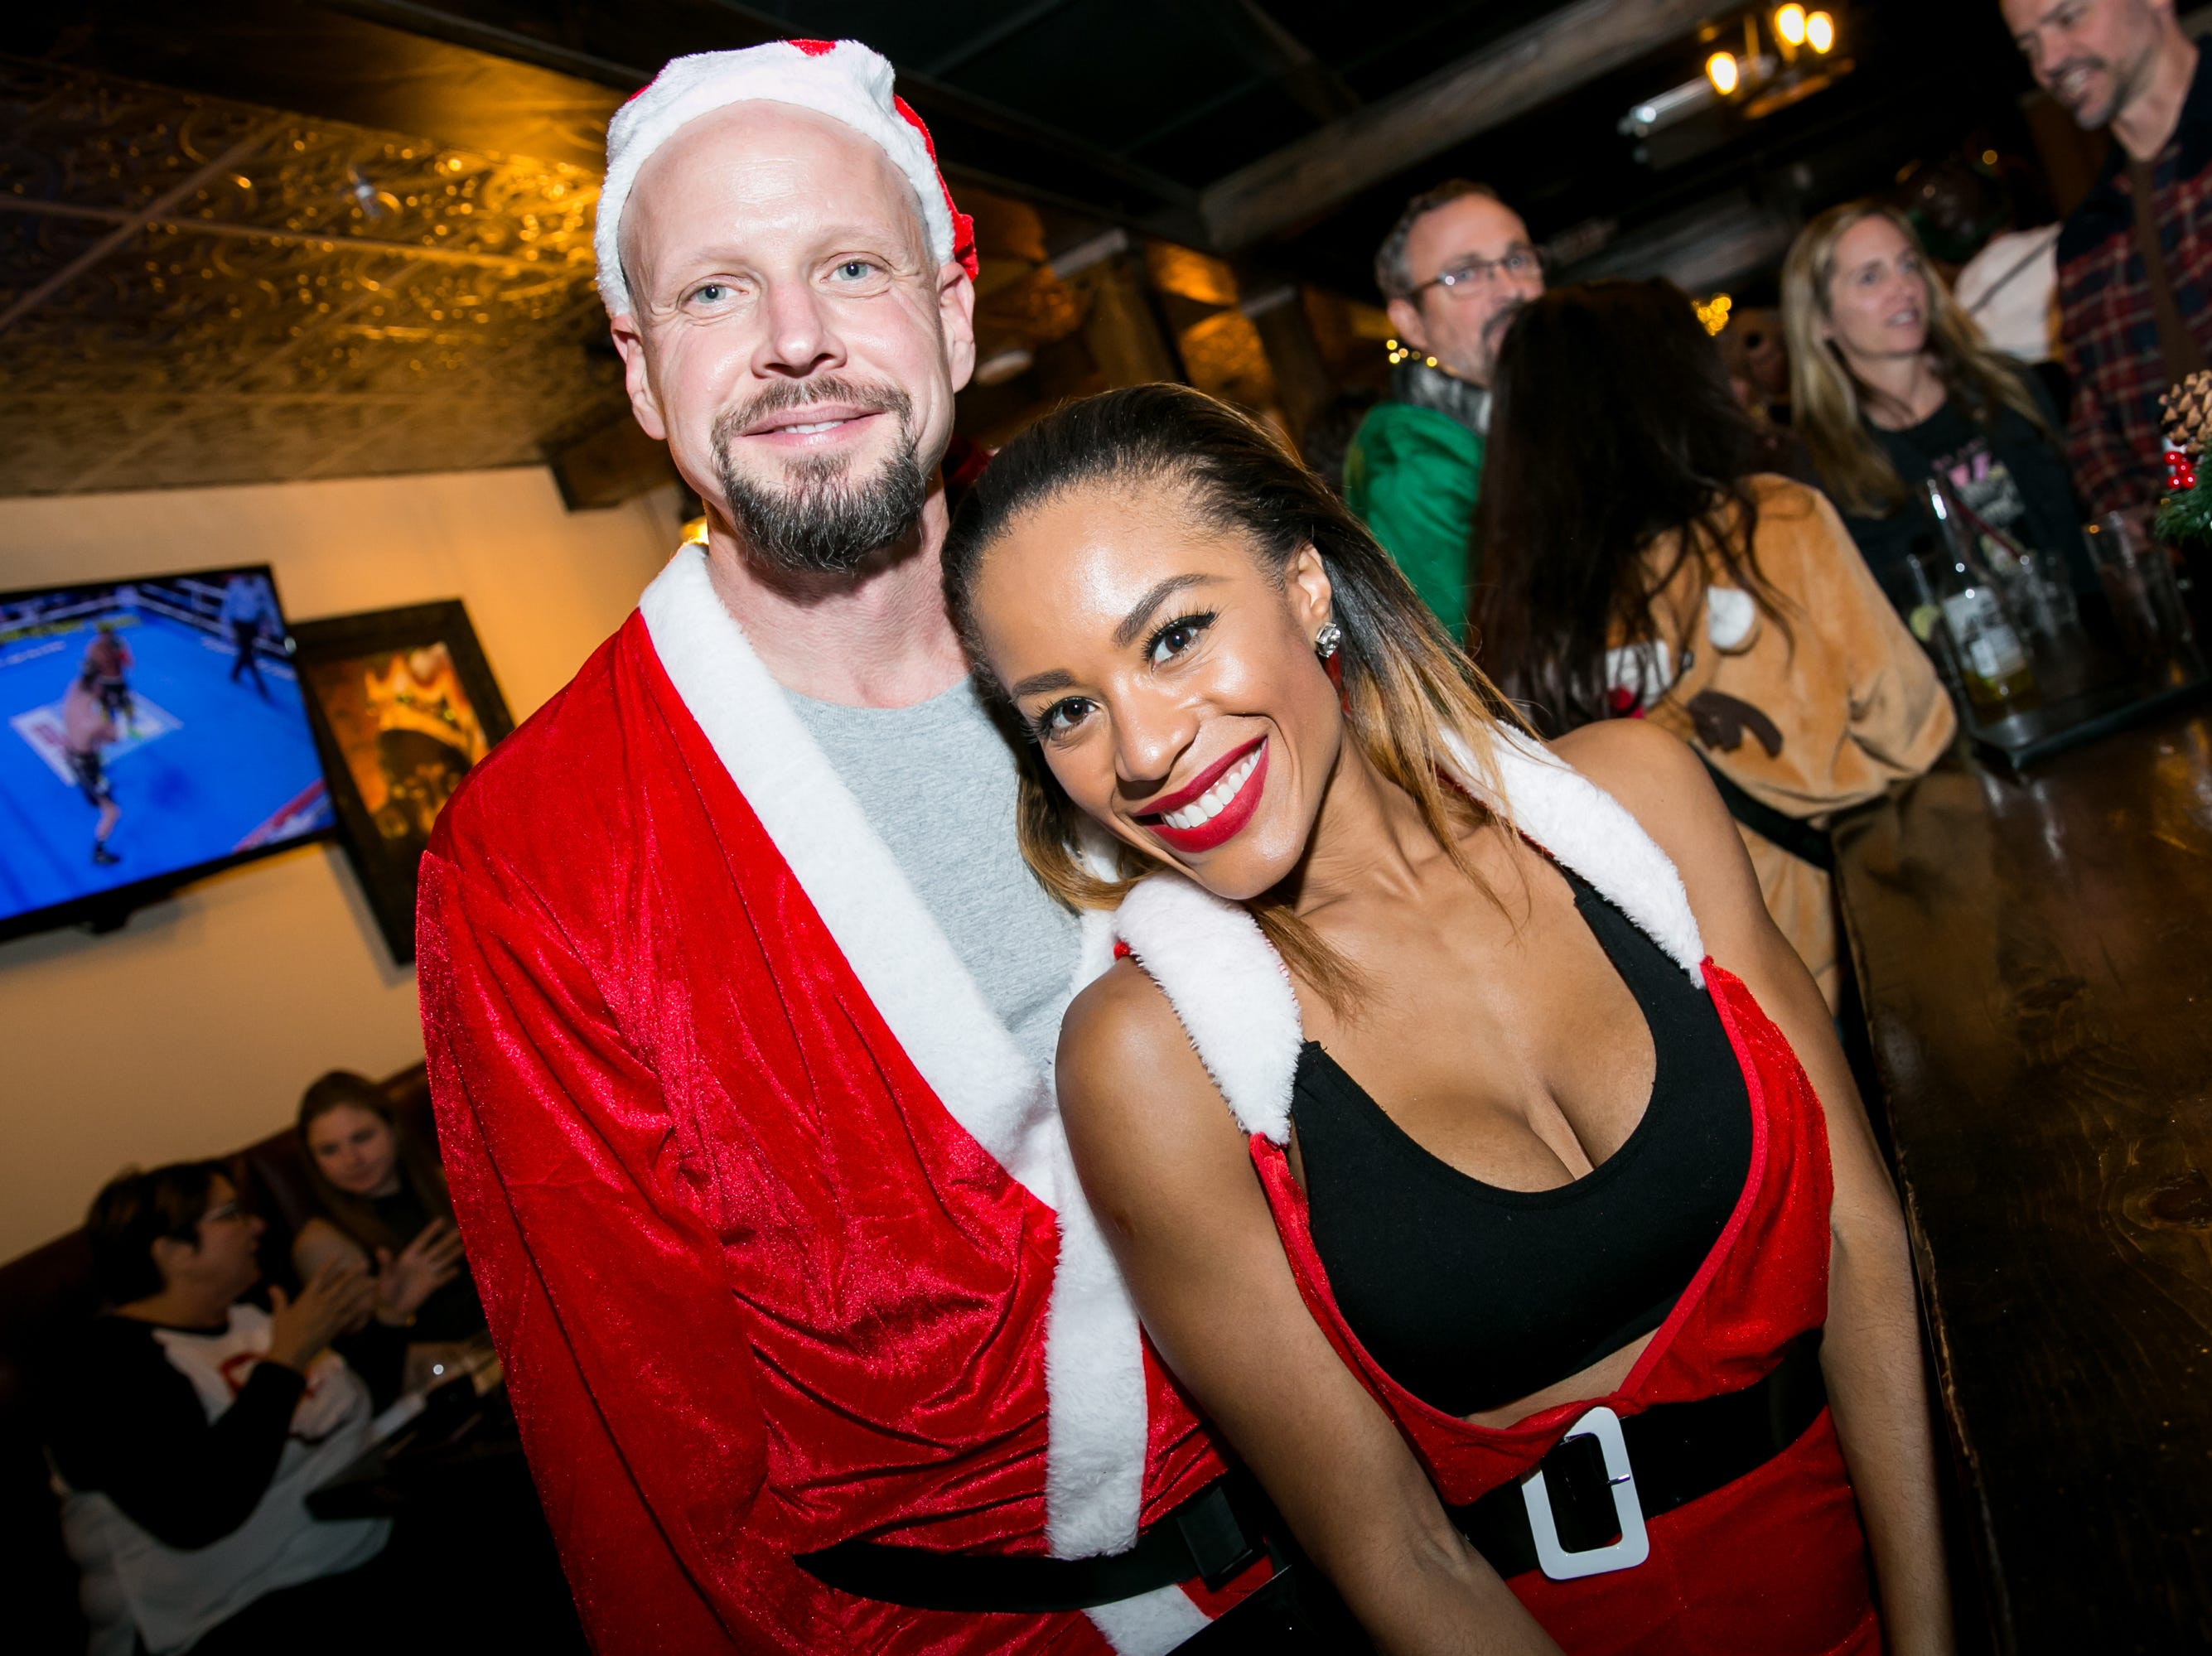 Fun times were had at The Kettle Black during Santarchy on Saturday, December 8, 2018.